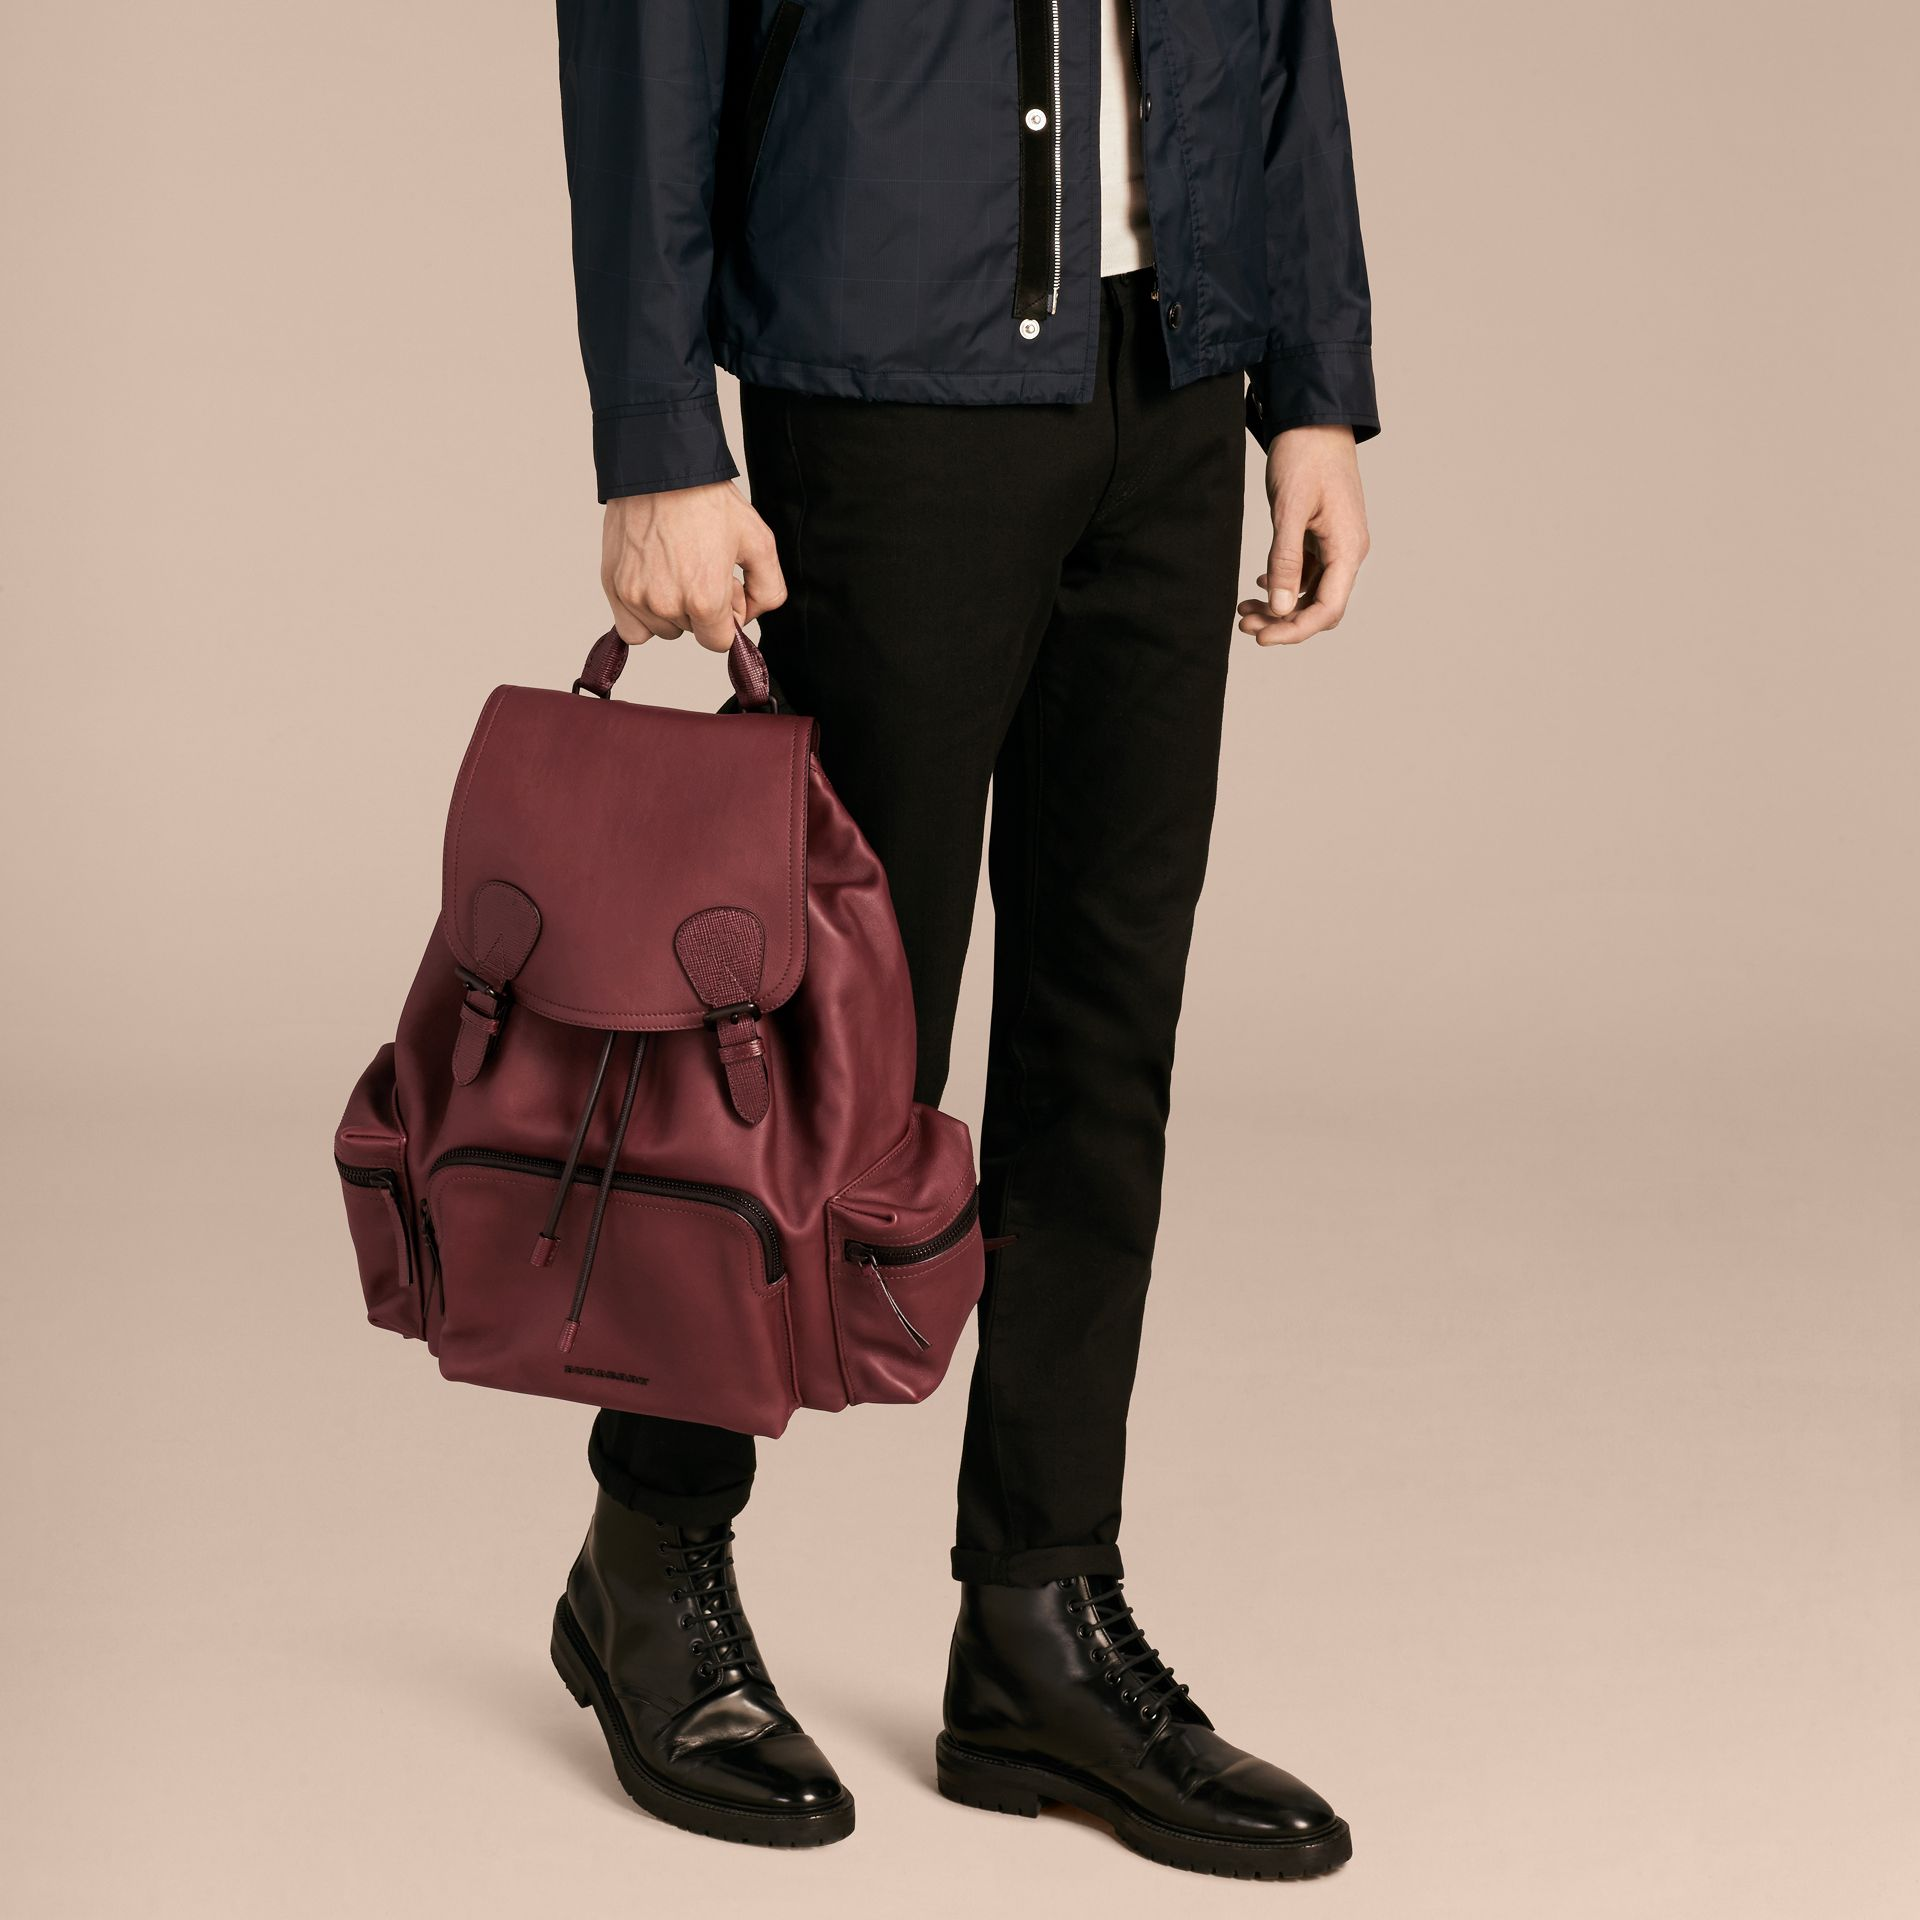 Burgundy red The Large Rucksack in Water-repellent Leather Burgundy Red - gallery image 3